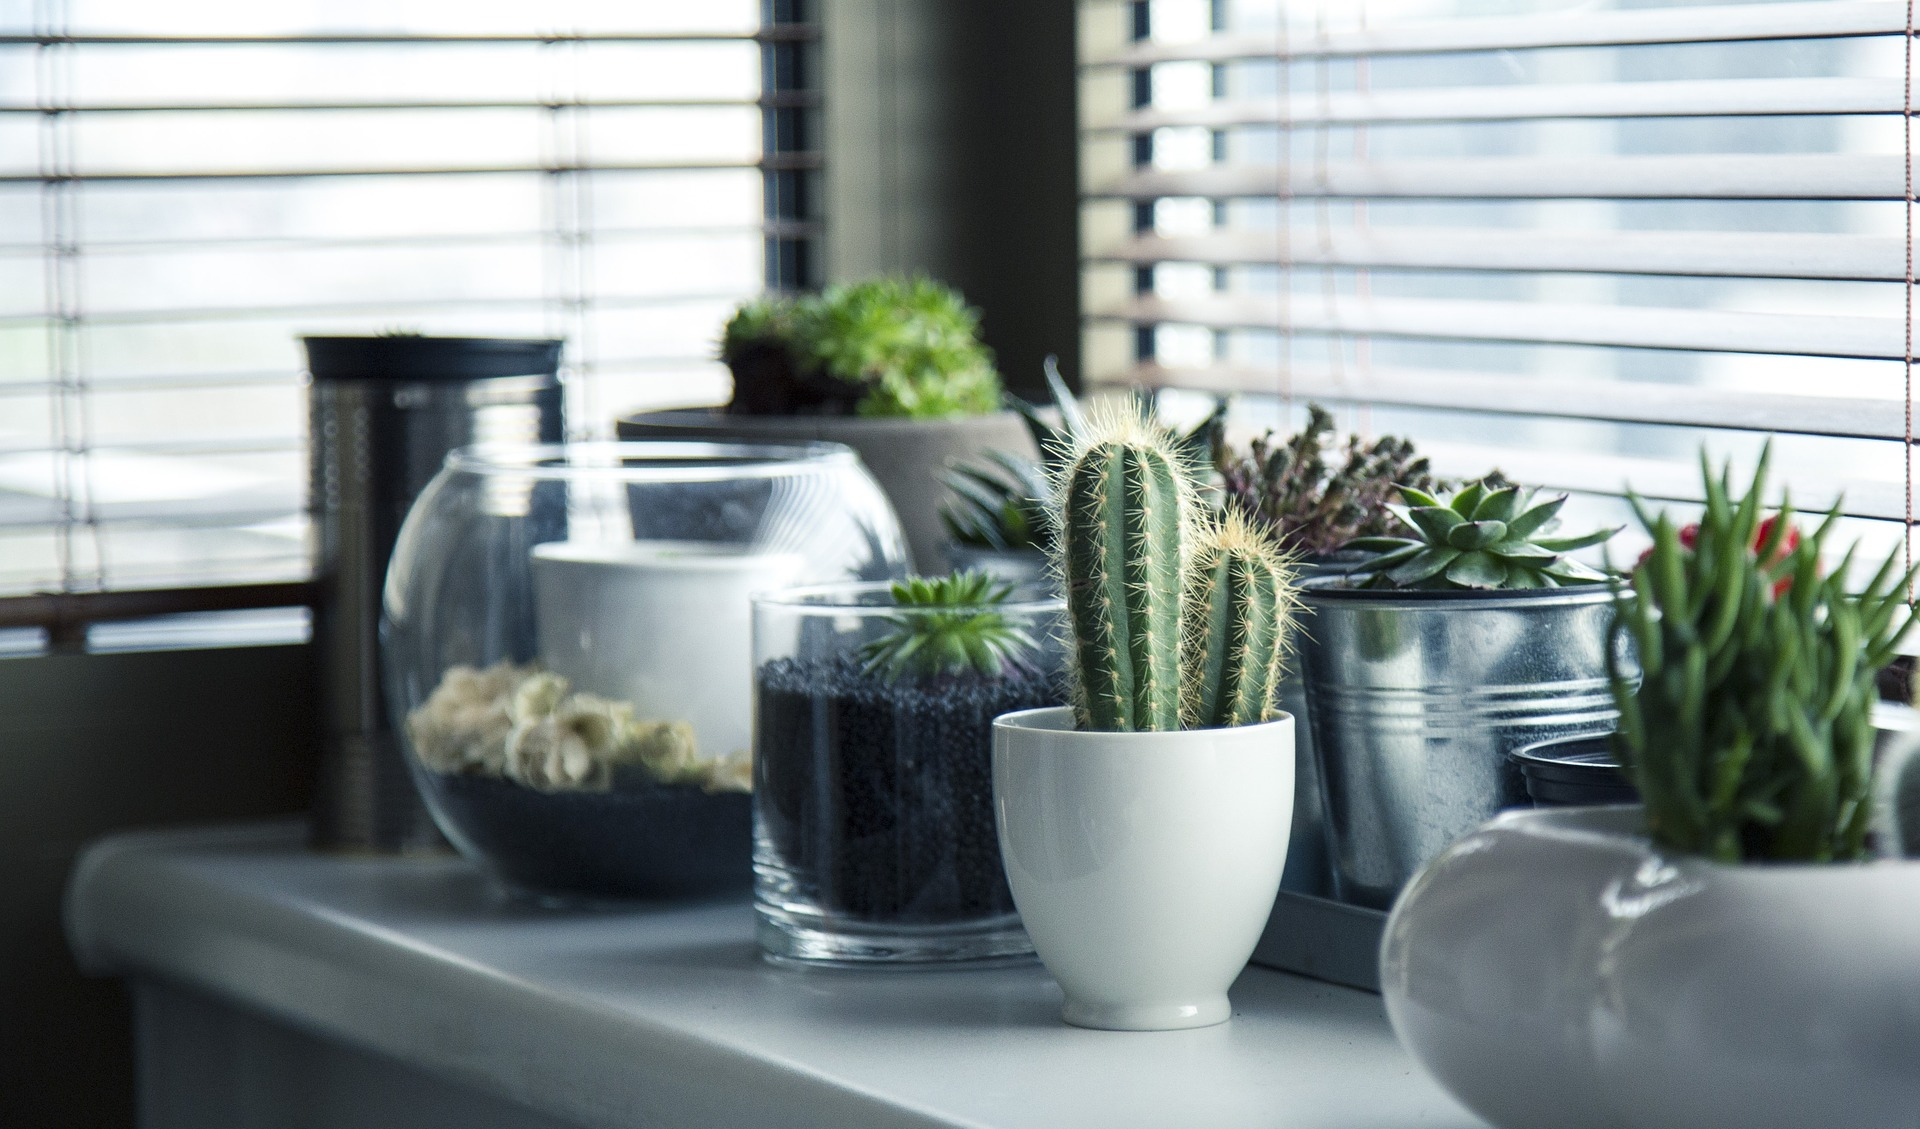 Assortment of potted plants on a shelf